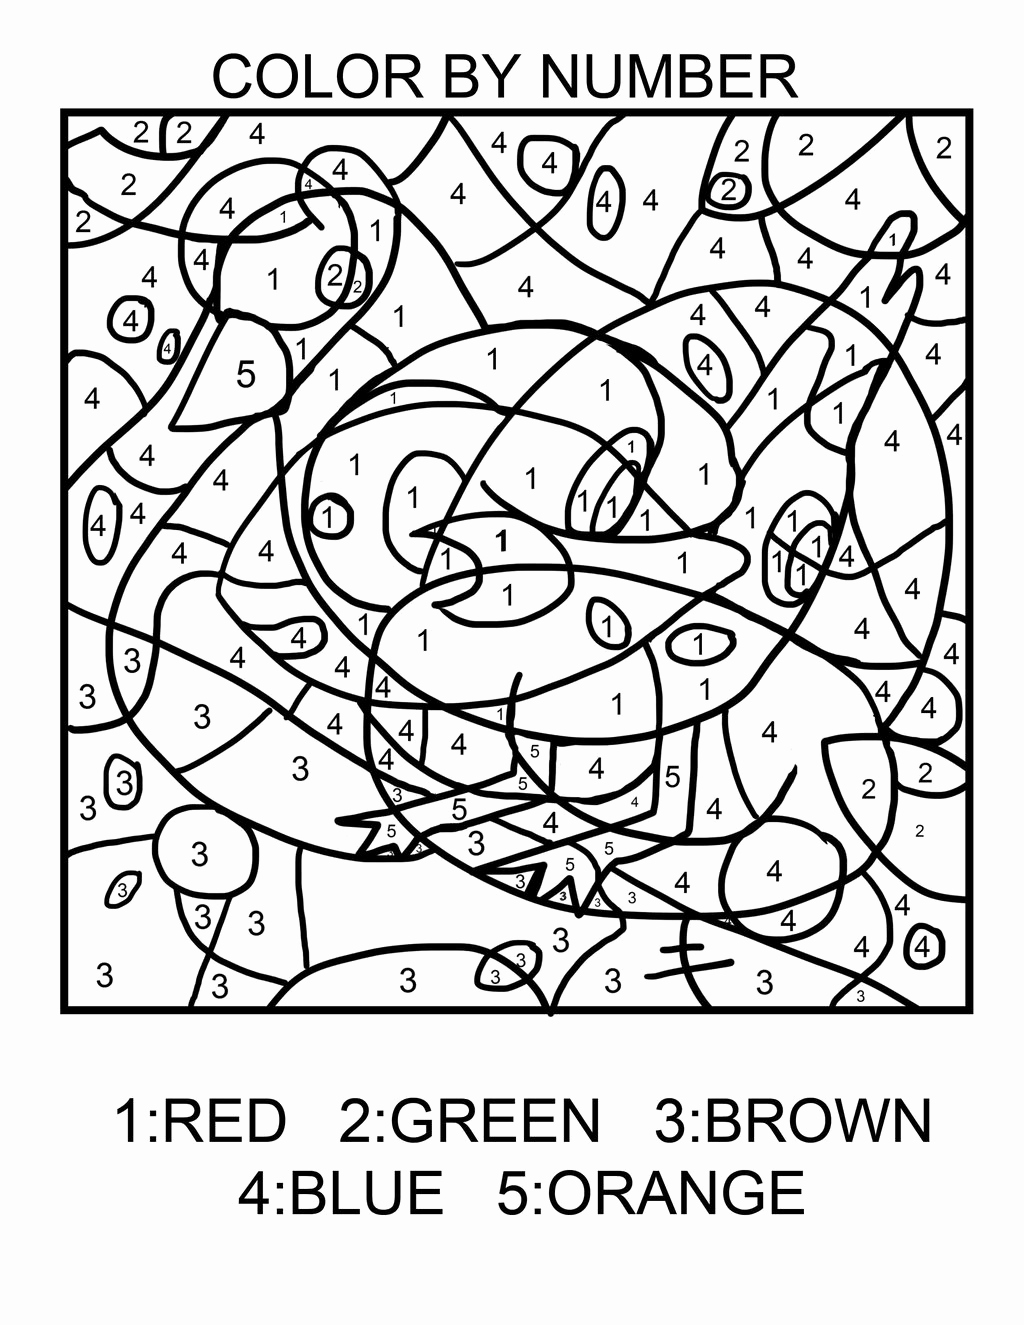 Easy Color by Number Worksheets Fresh Easy Color by Number Get Coloring Pages